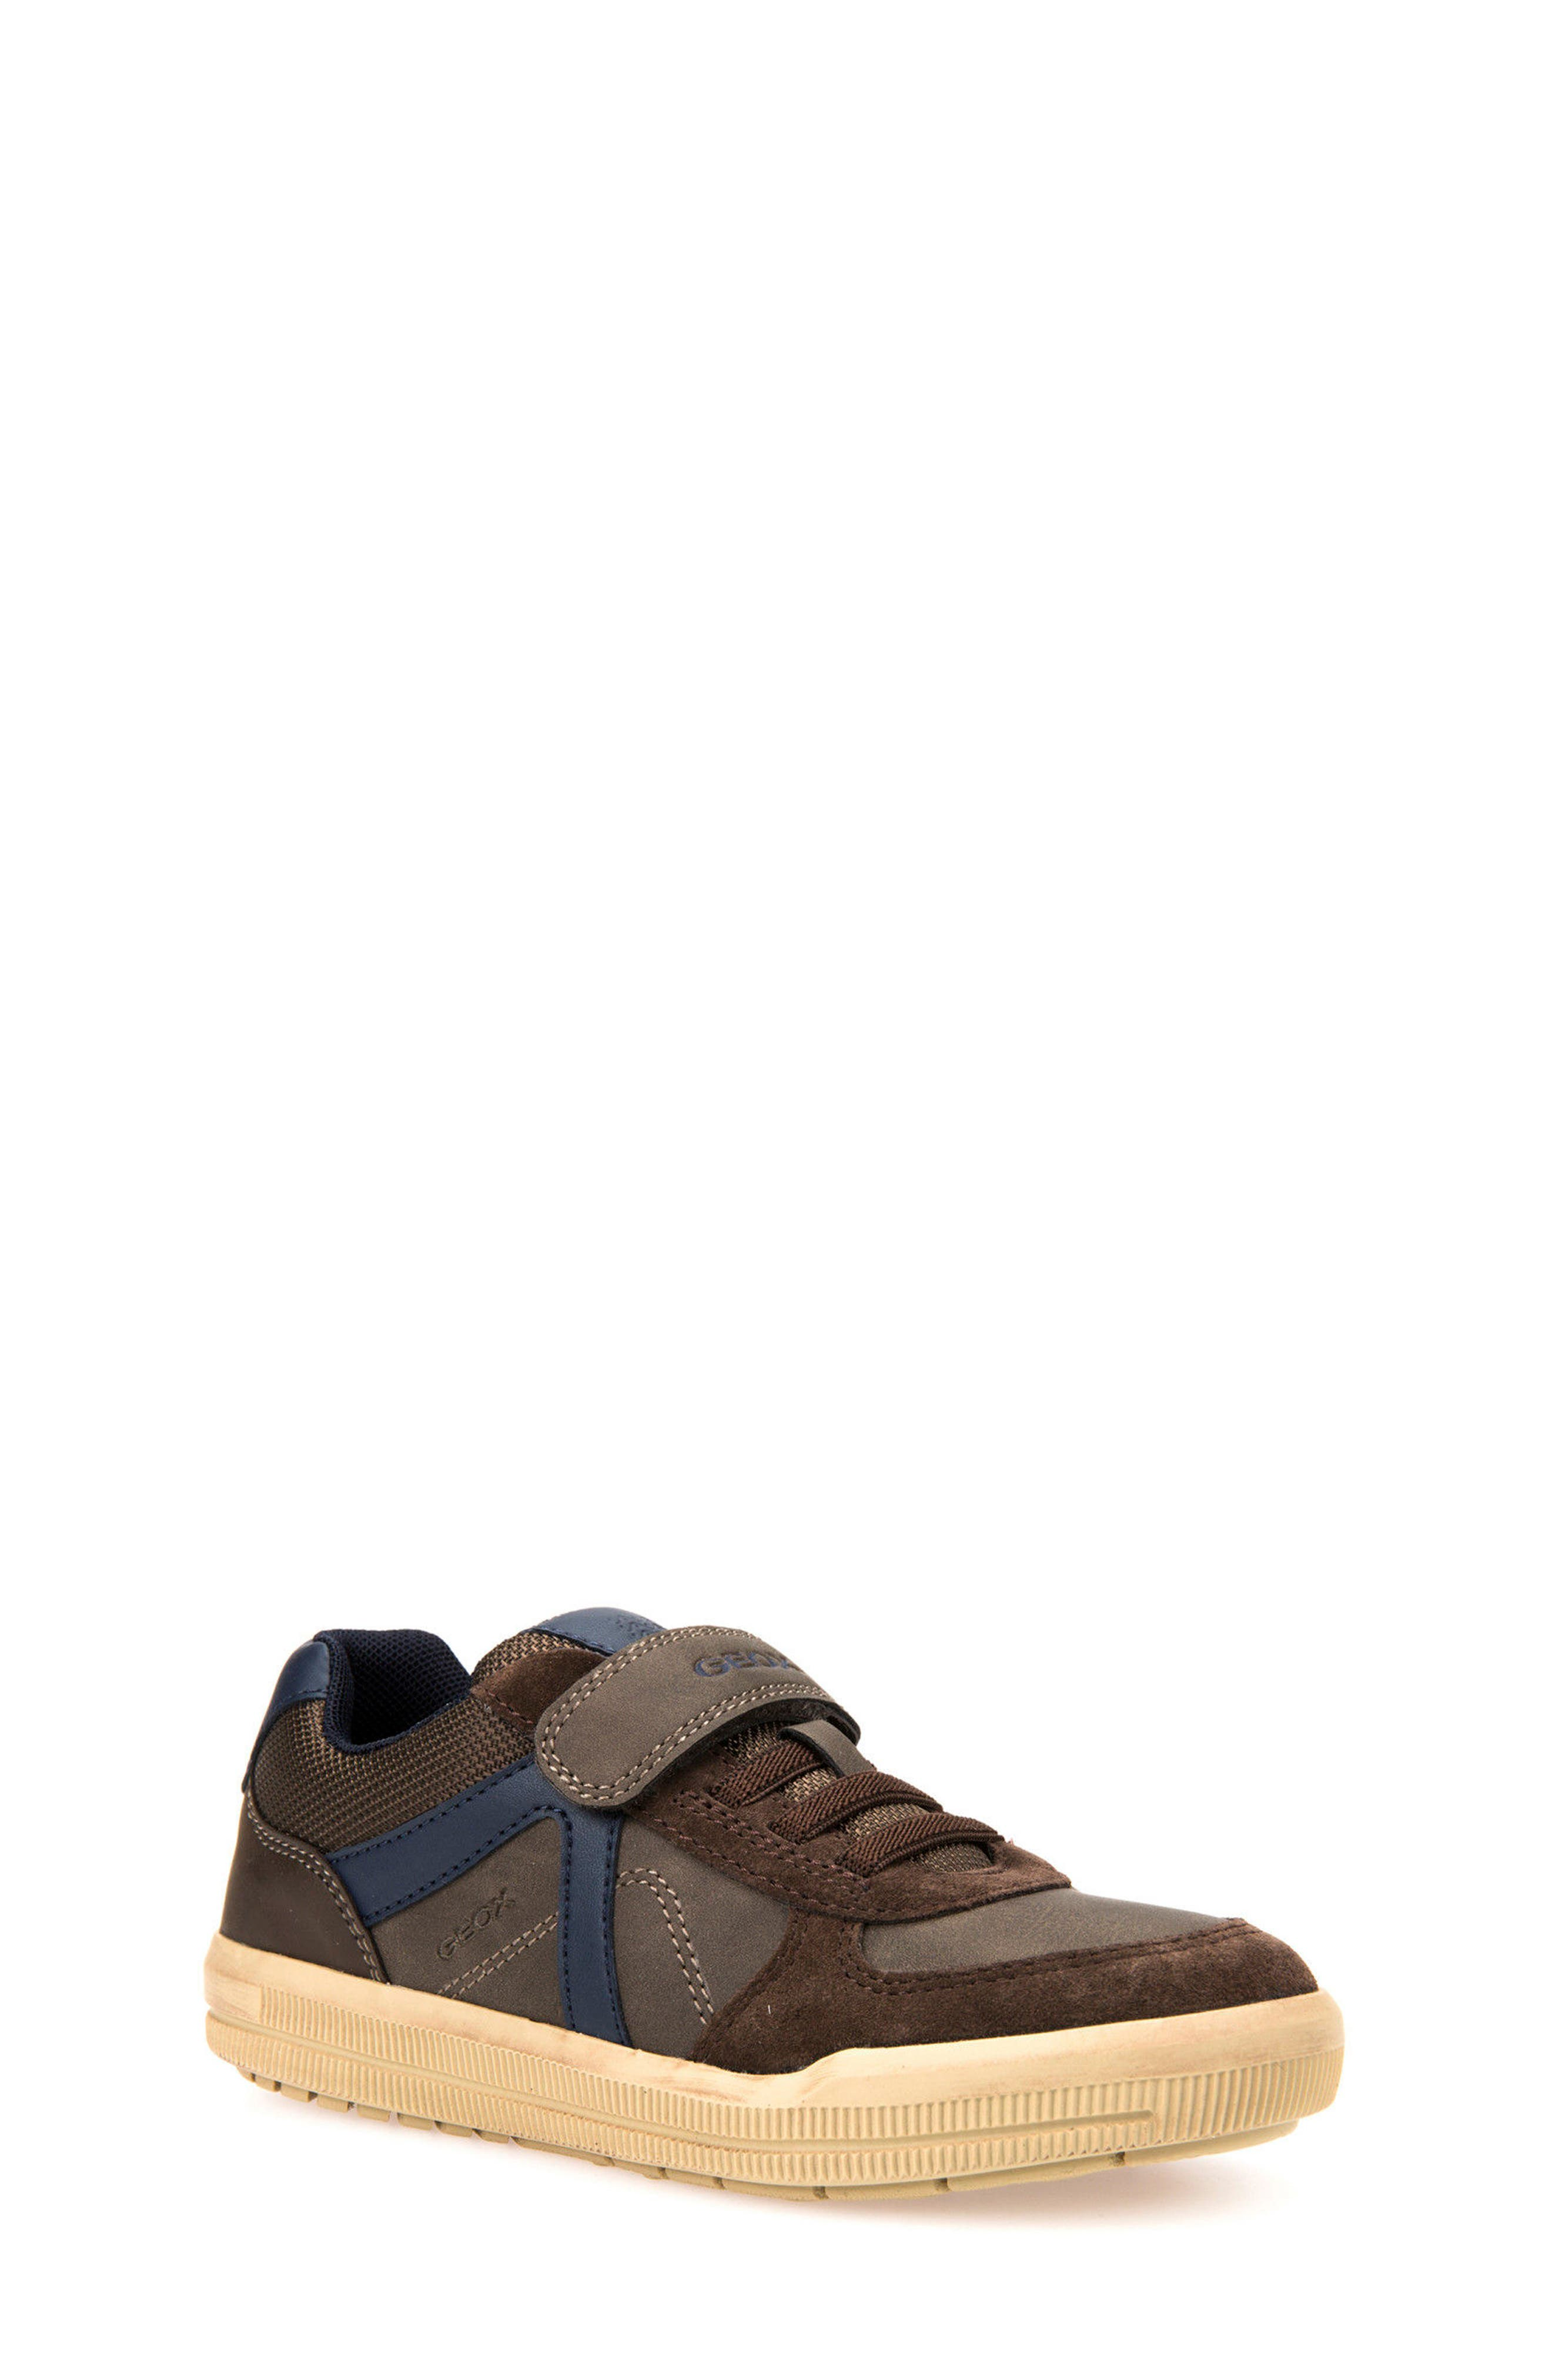 Arzach Low Top Sneaker,                             Main thumbnail 1, color,                             Brown/ Navy